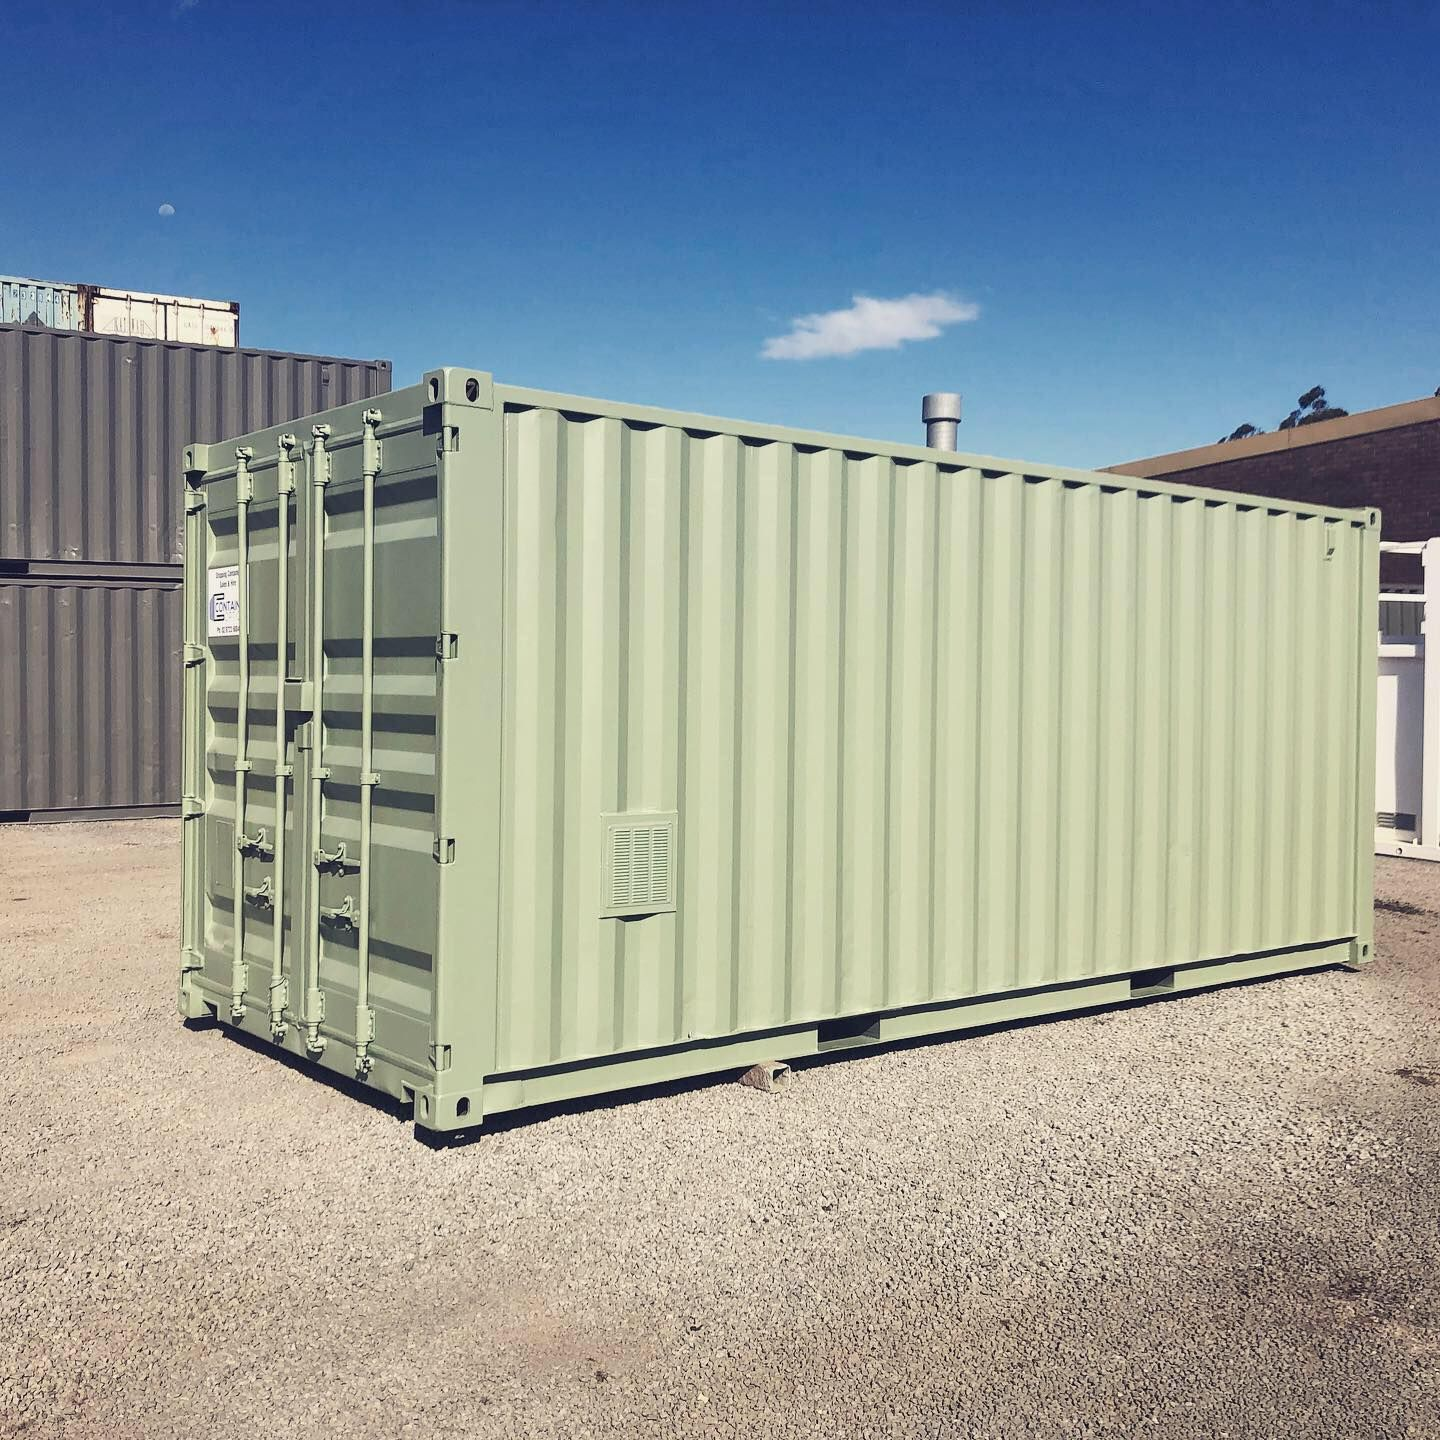 Pale Eucalypt Is A Hit Portable Buildings Refurbishing Shipping Container